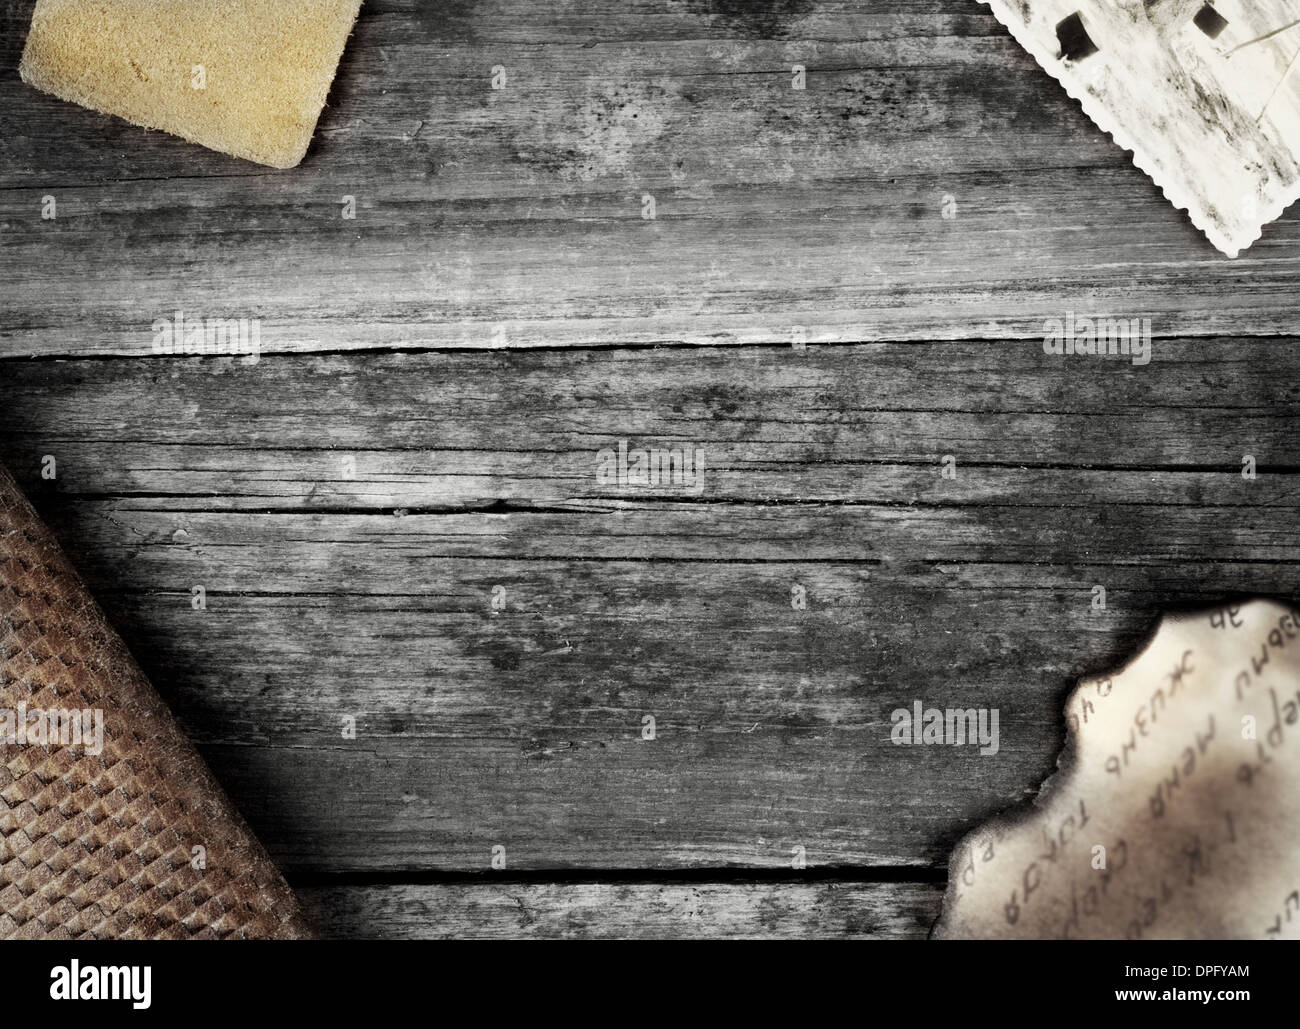 Vintage background with bleached wood and photography Stock Photo